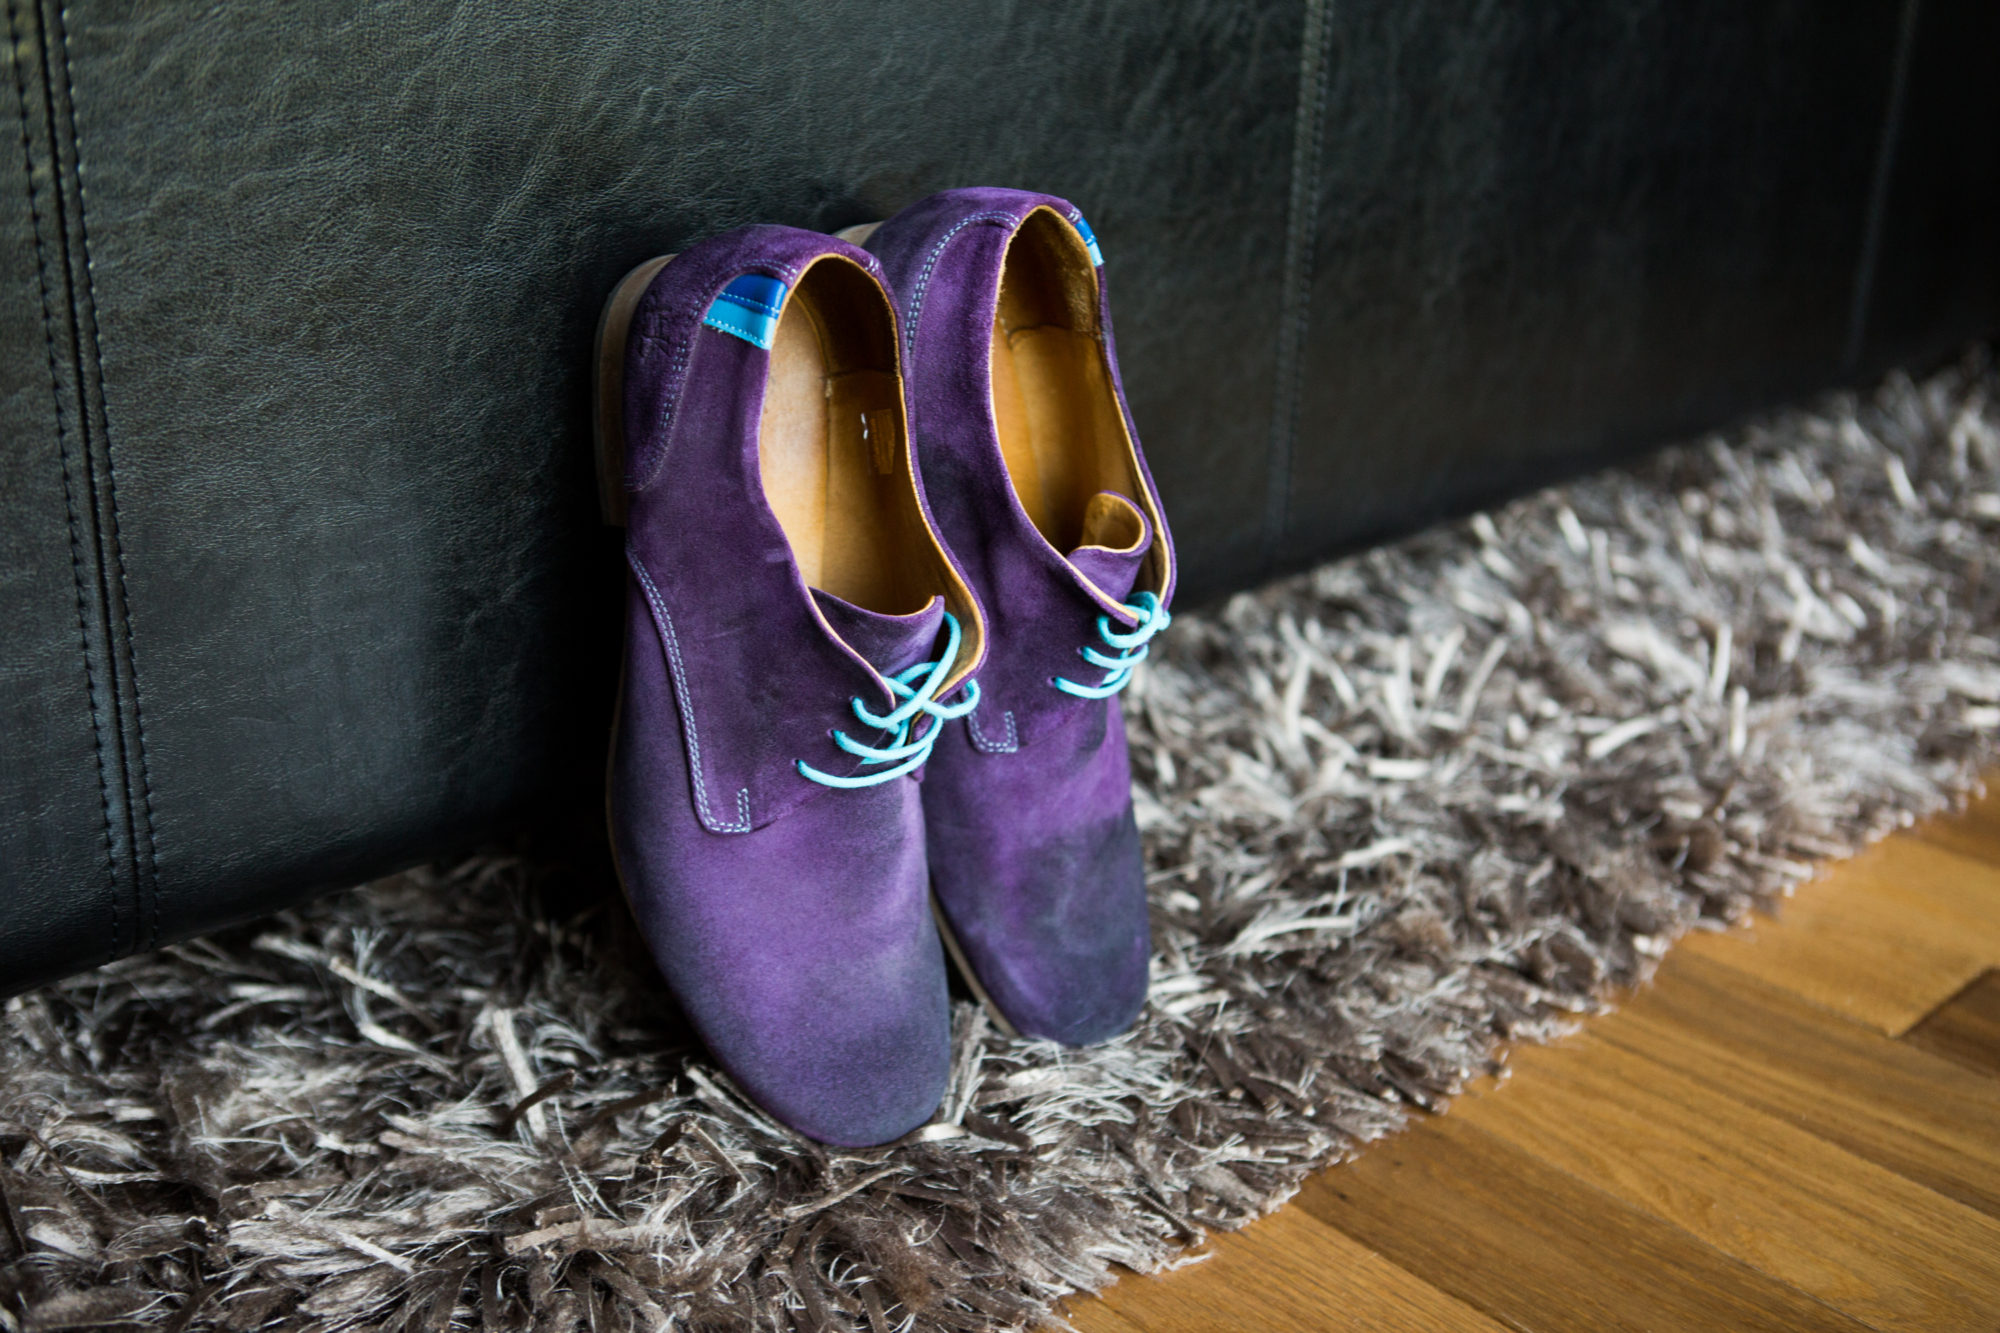 Purple Suede Shoes Hope Wedding British Columbia American Creek Lodge Zsuzsi Pal Photography